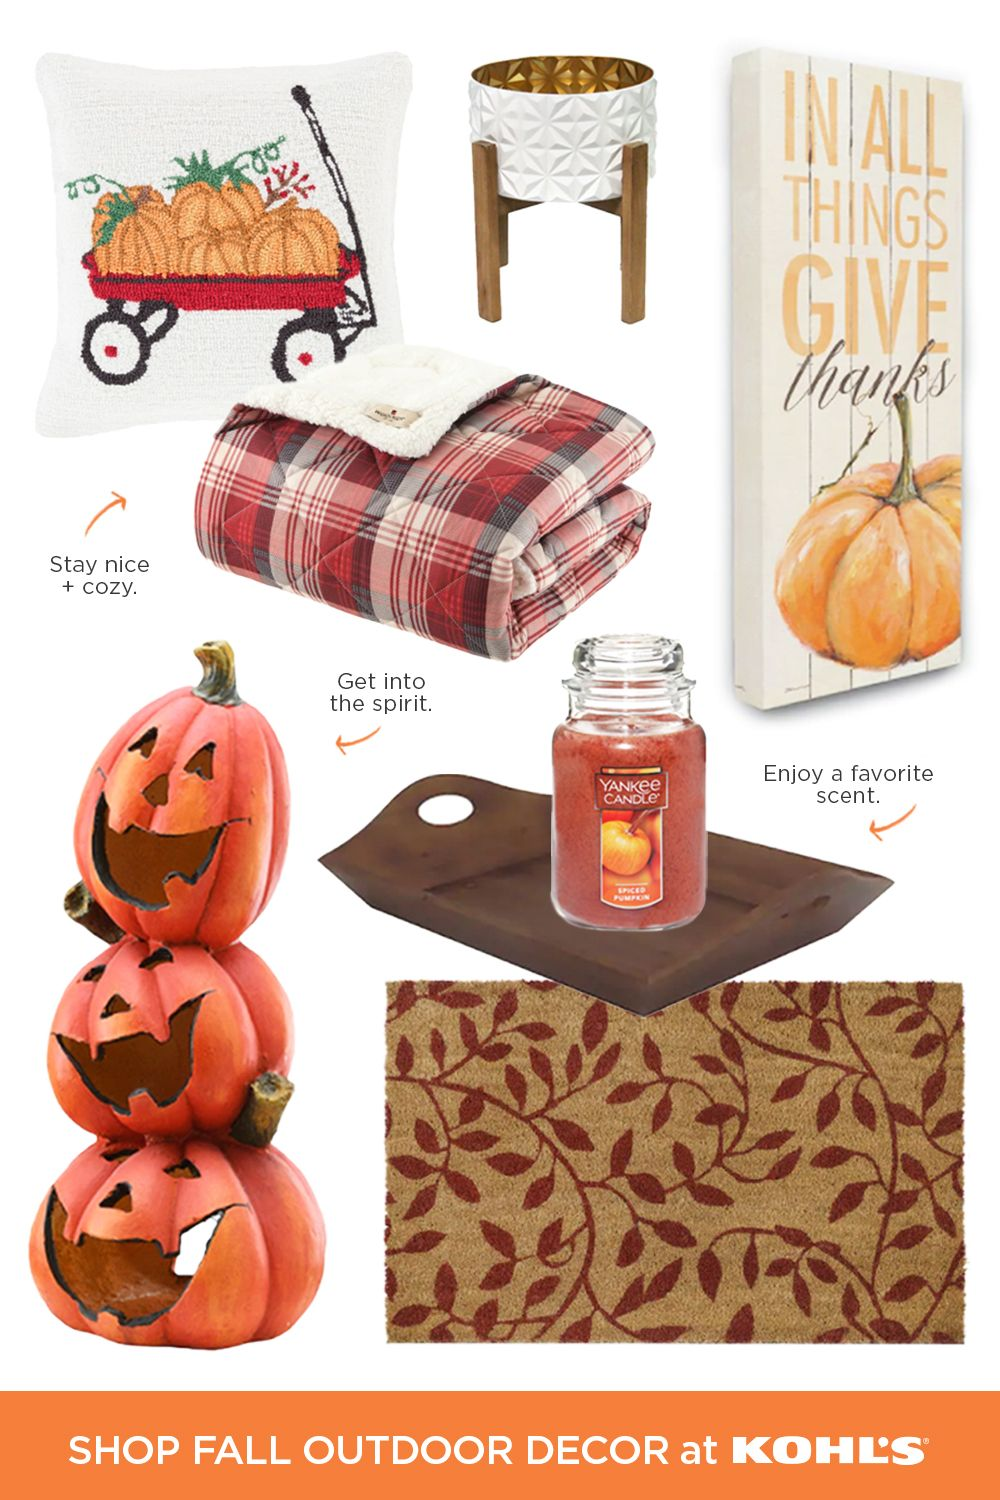 Find Fall Outdoor Decor At Kohl S In 2020 Fall Thanksgiving Decor Fall Outdoor Decor Fall Decor Diy